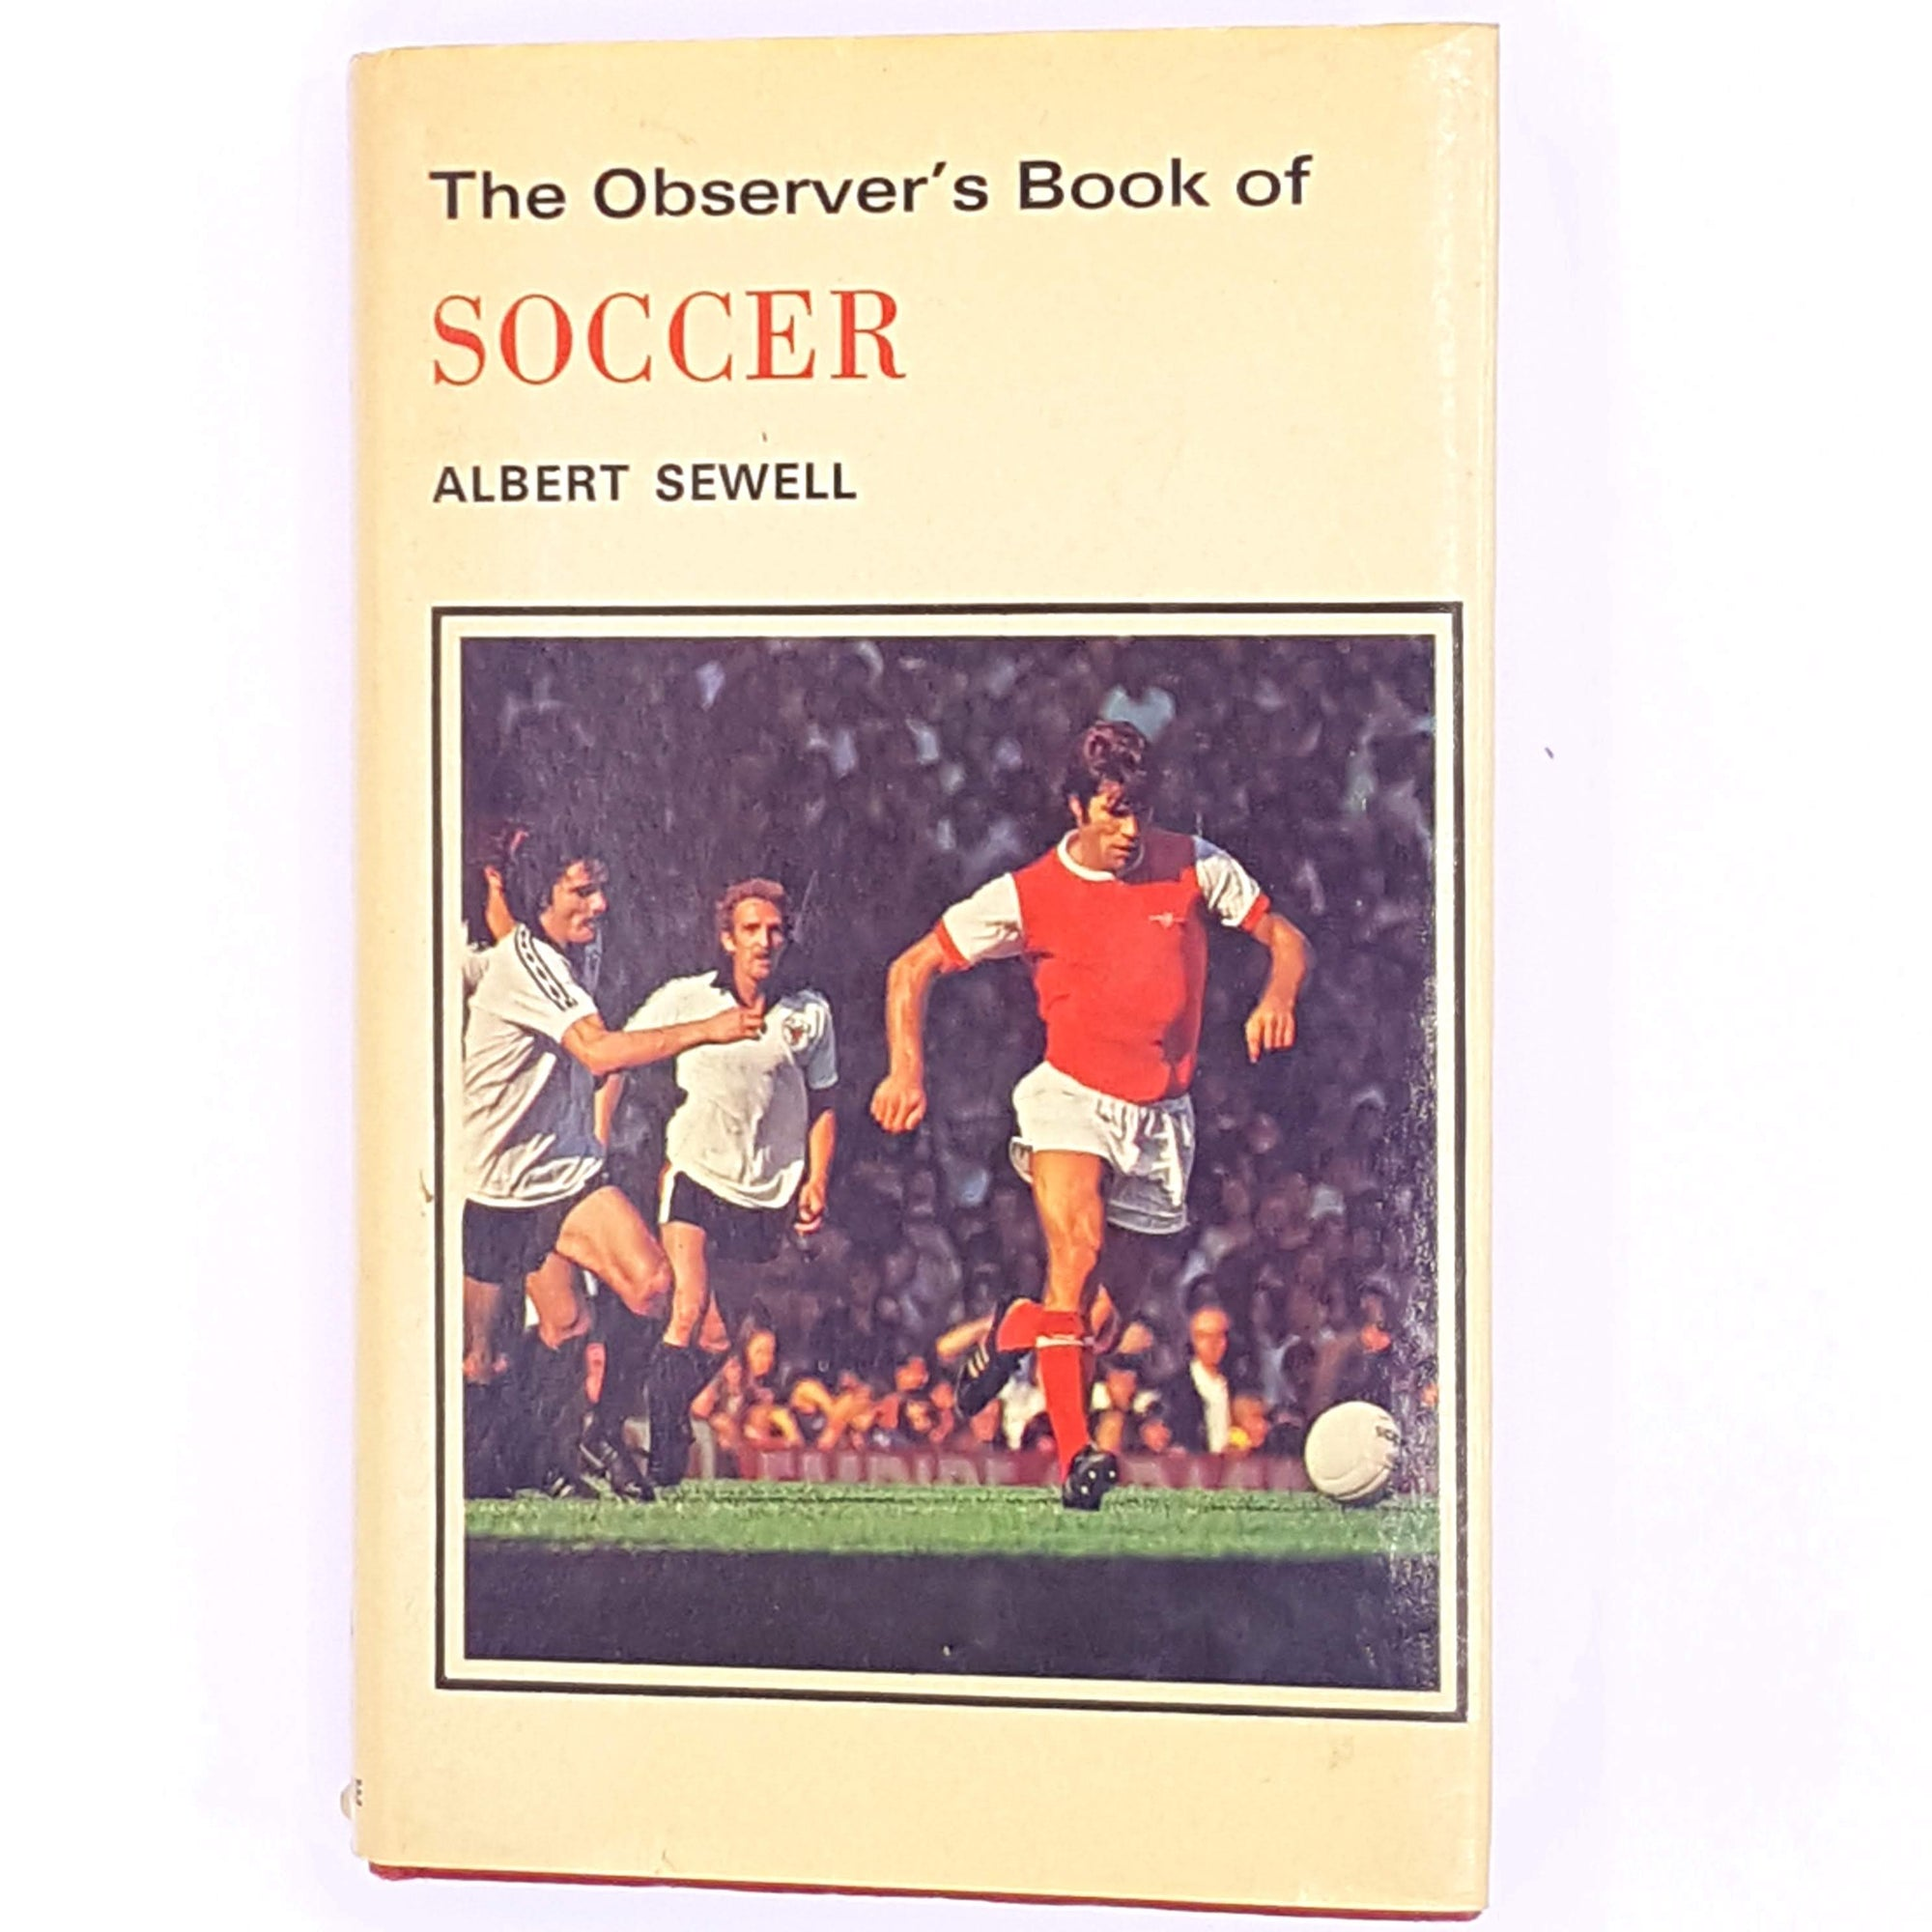 The Observer's Book of Soccer by Albert Sewell Fourth Edition 1978